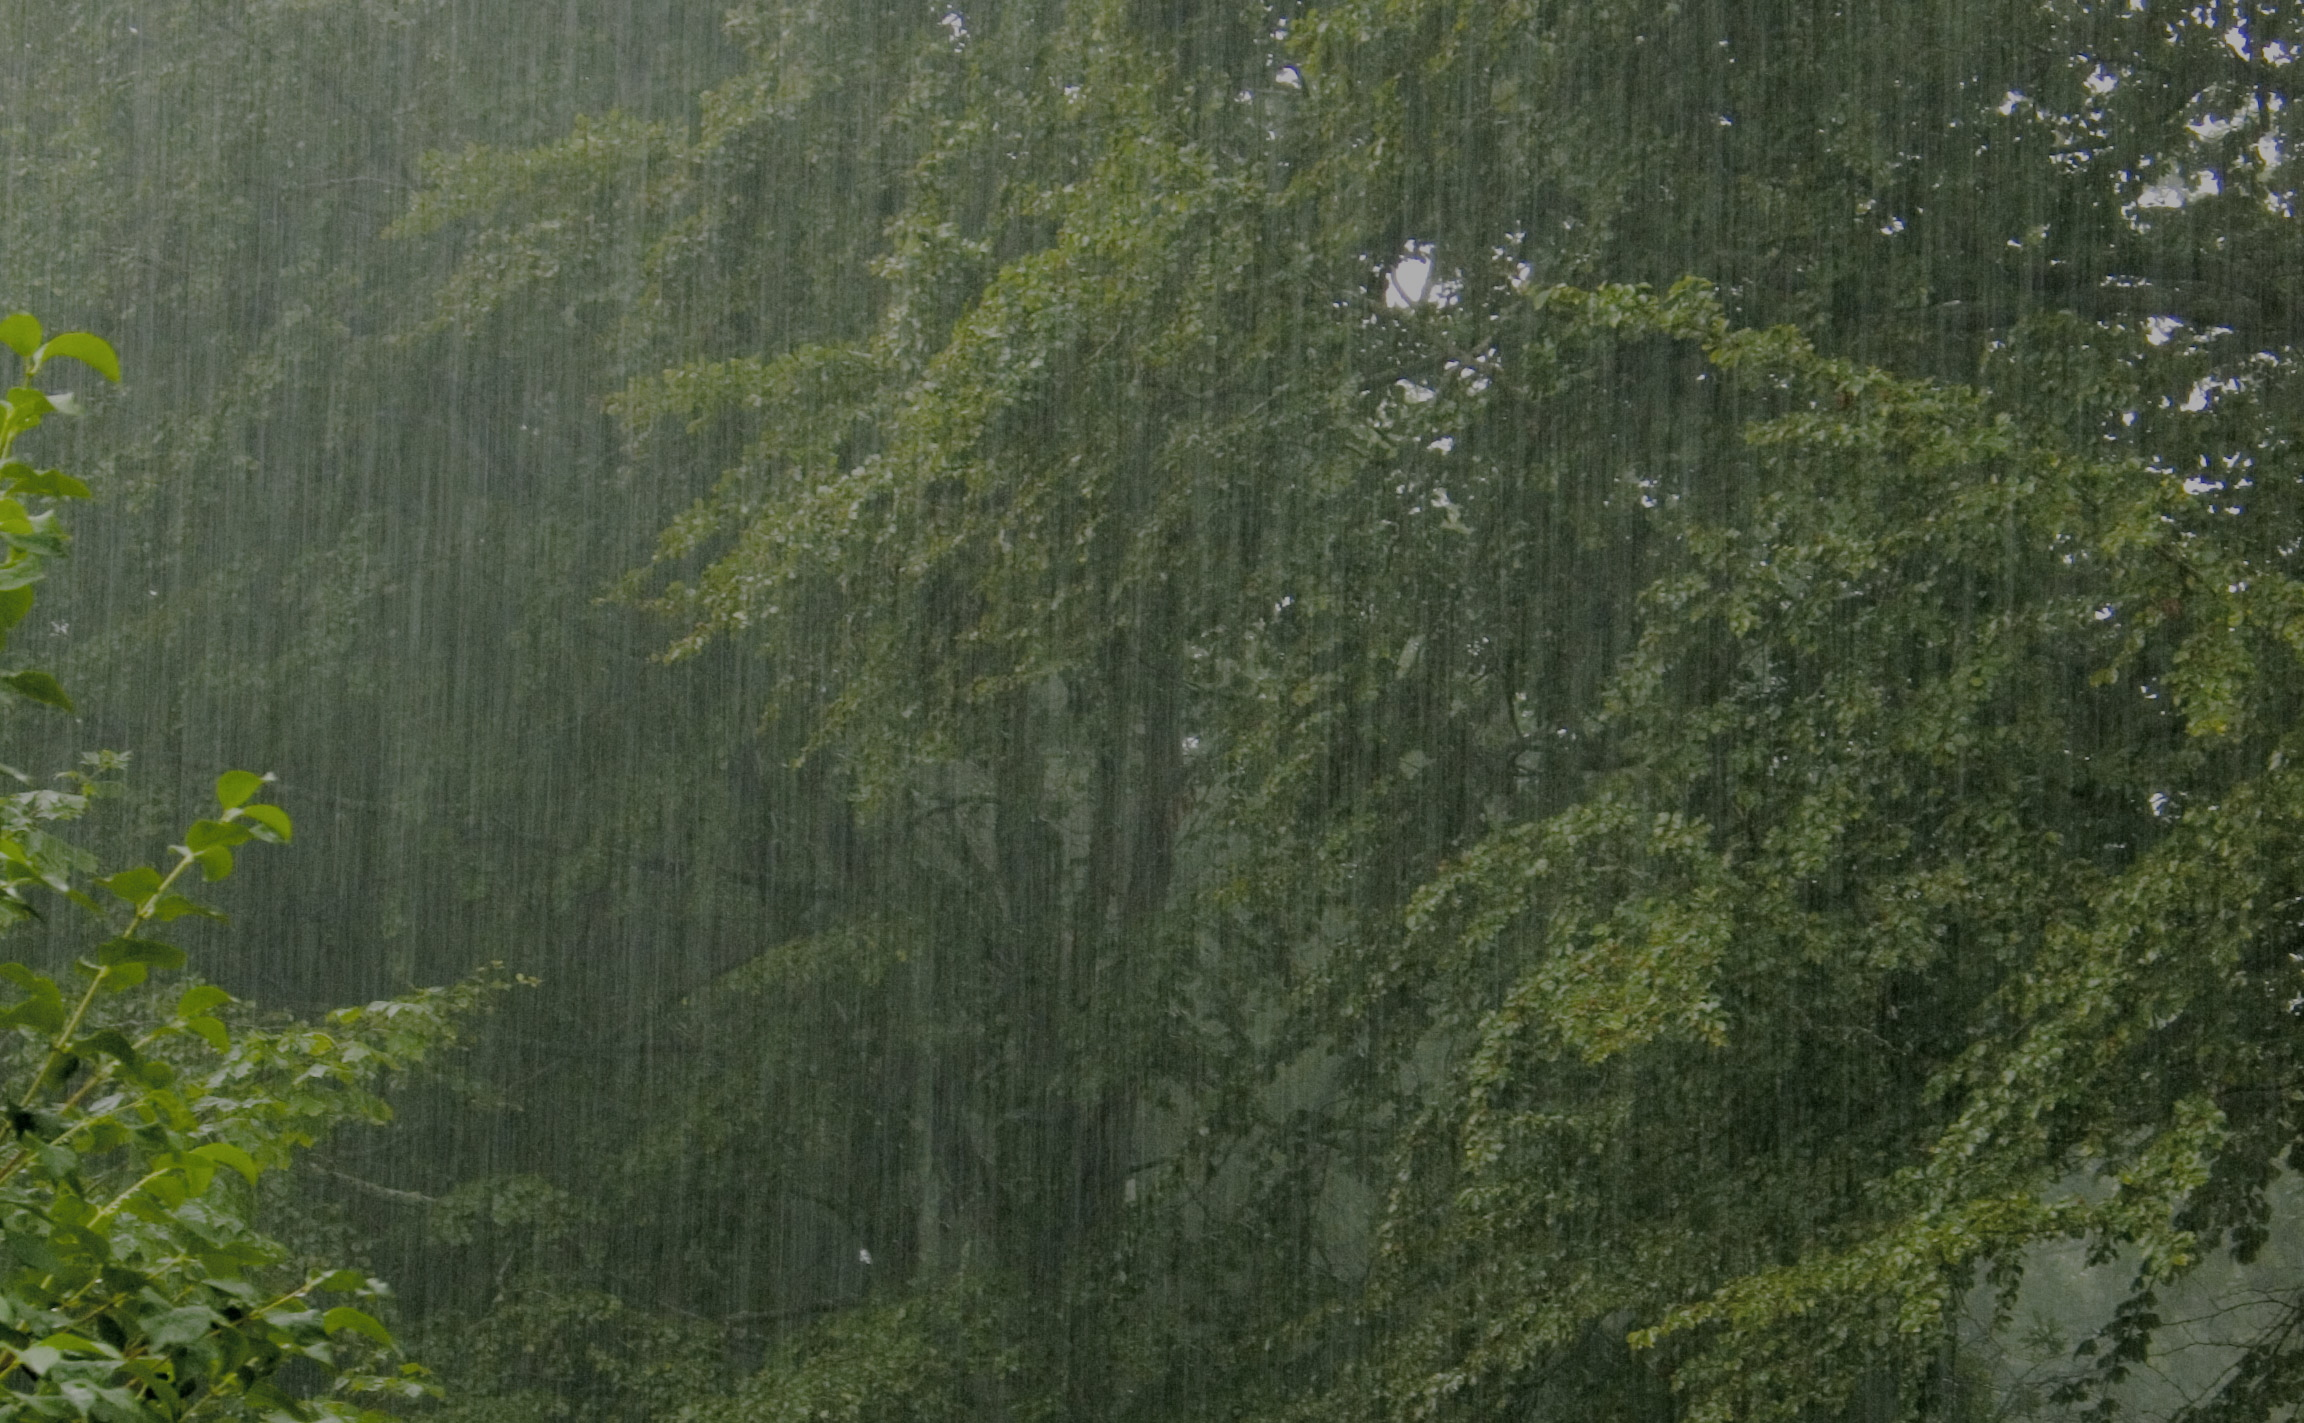 nature Trees rain forest HD Wallpaper